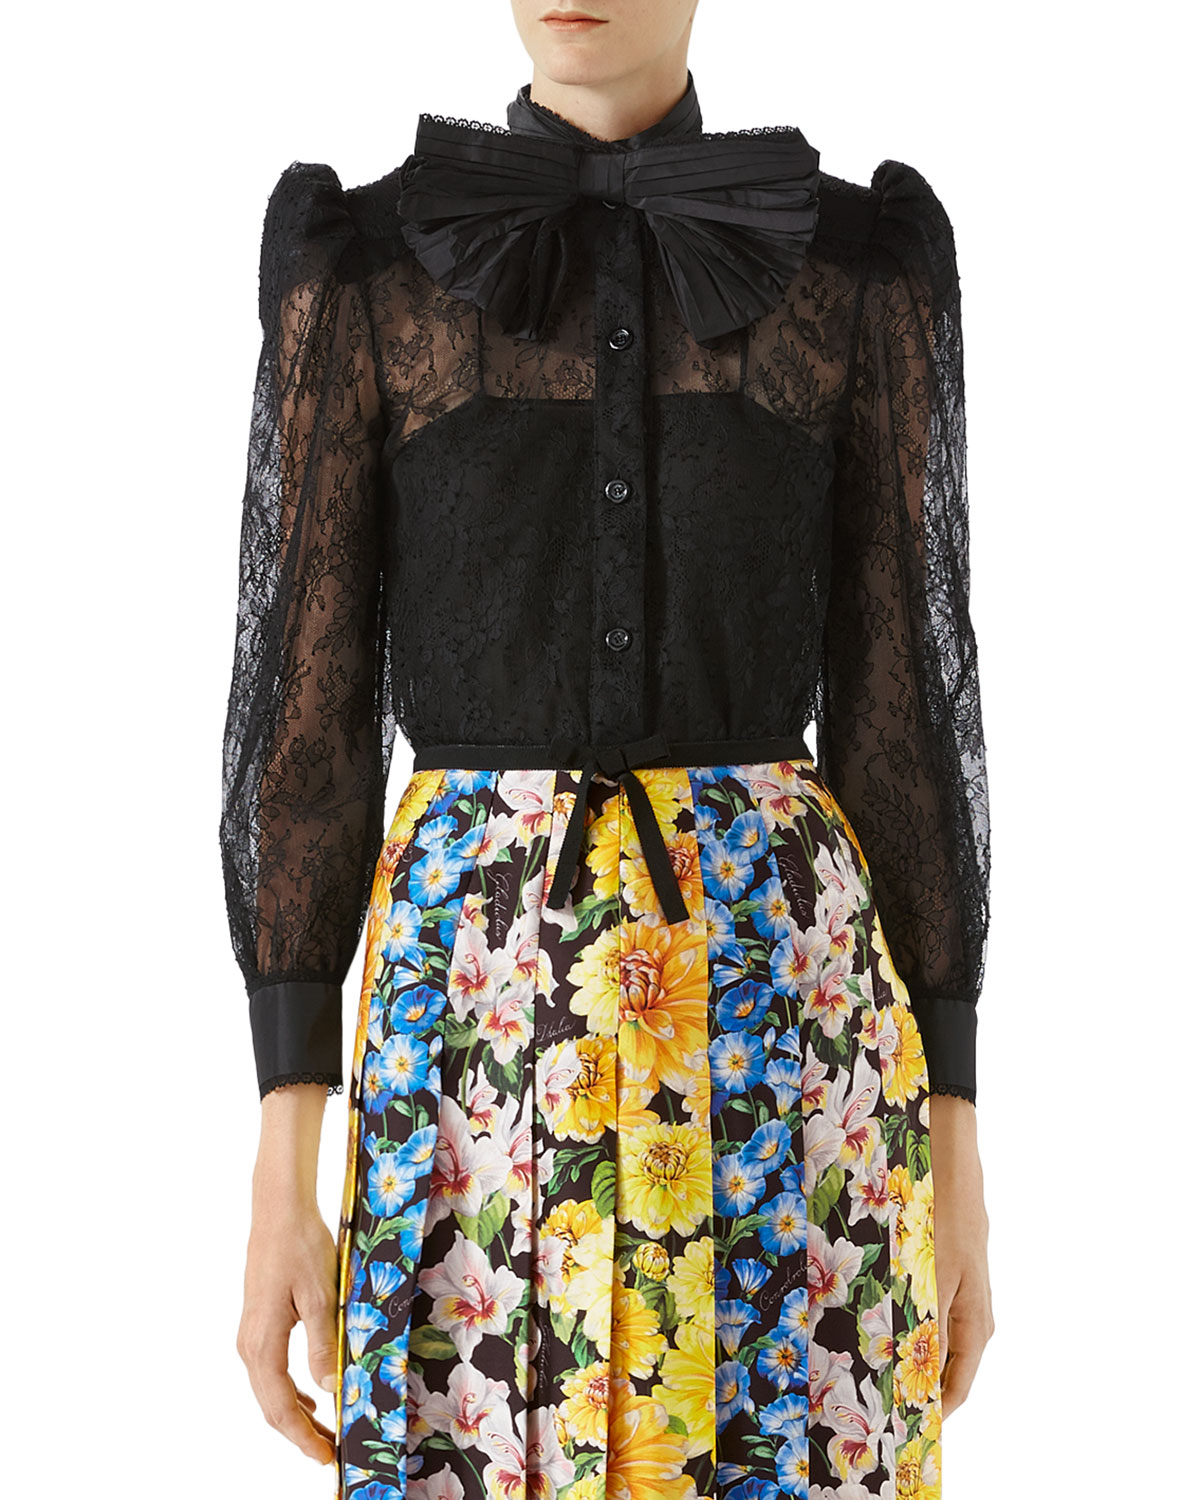 Chantilly Lace Shirt with Bow